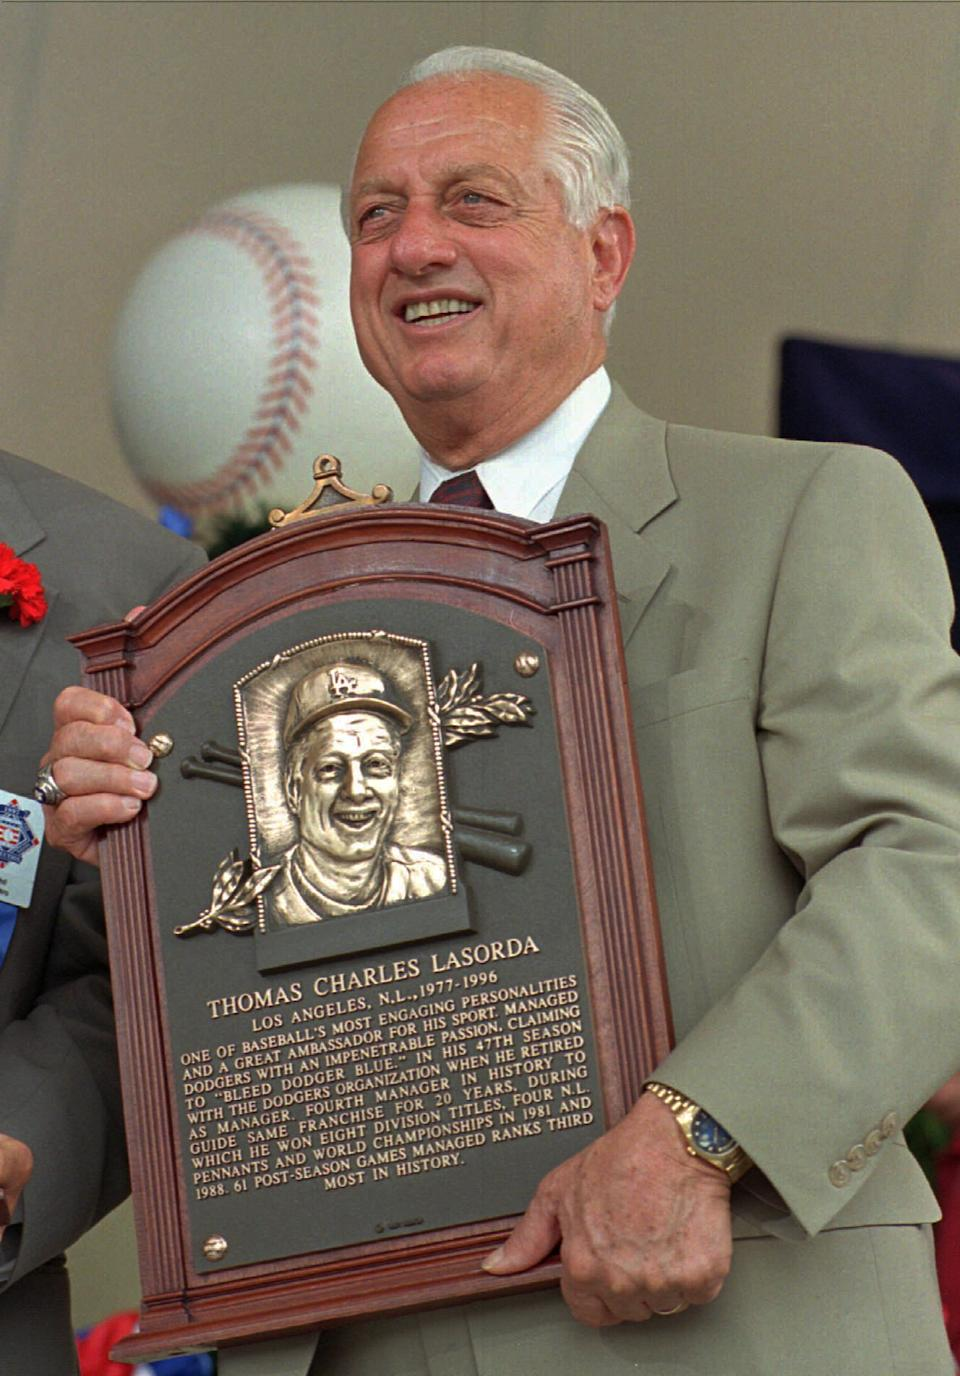 Tommy Lasorda poses with his Hall of Fame plaque after his induction Sunday, Aug. 3, 1997 in Cooperstown, N.Y. (AP Photo/ Dave Jennings)